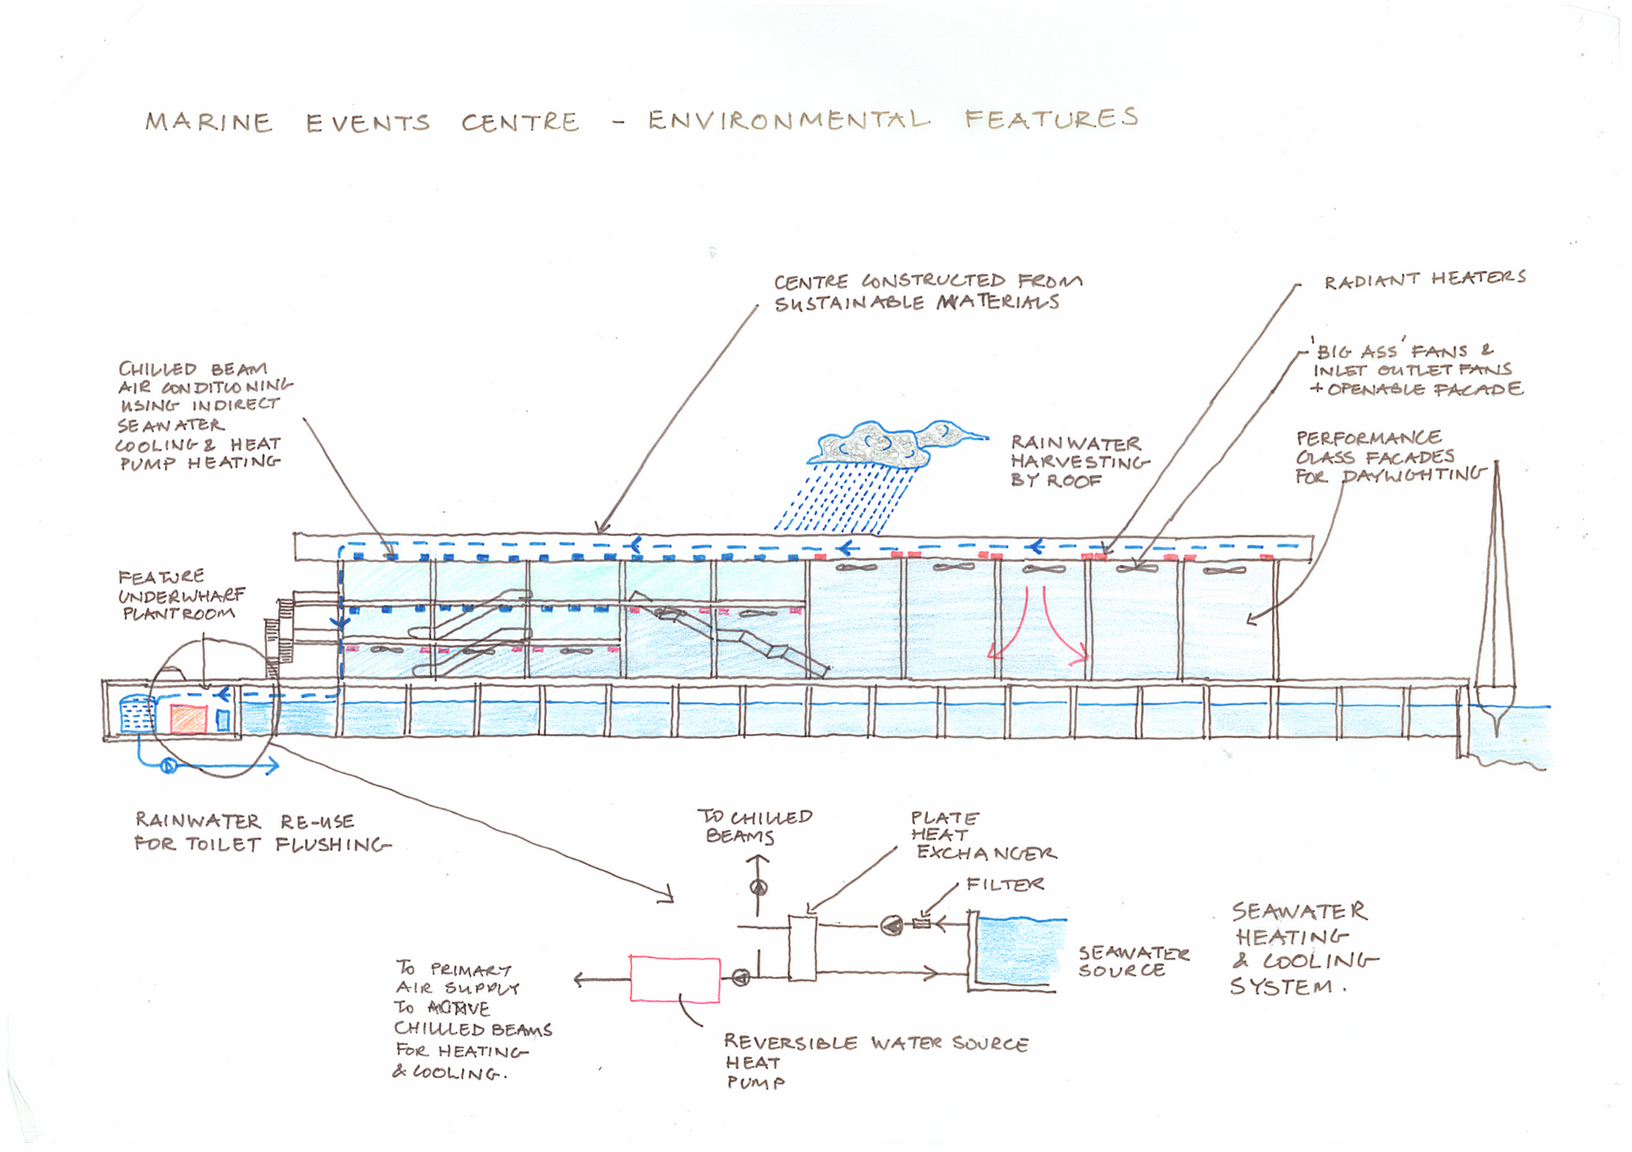 'Marine Events Centre - Environmental Principles - Drawings by David Fullbrook / eCubed Building Workshop